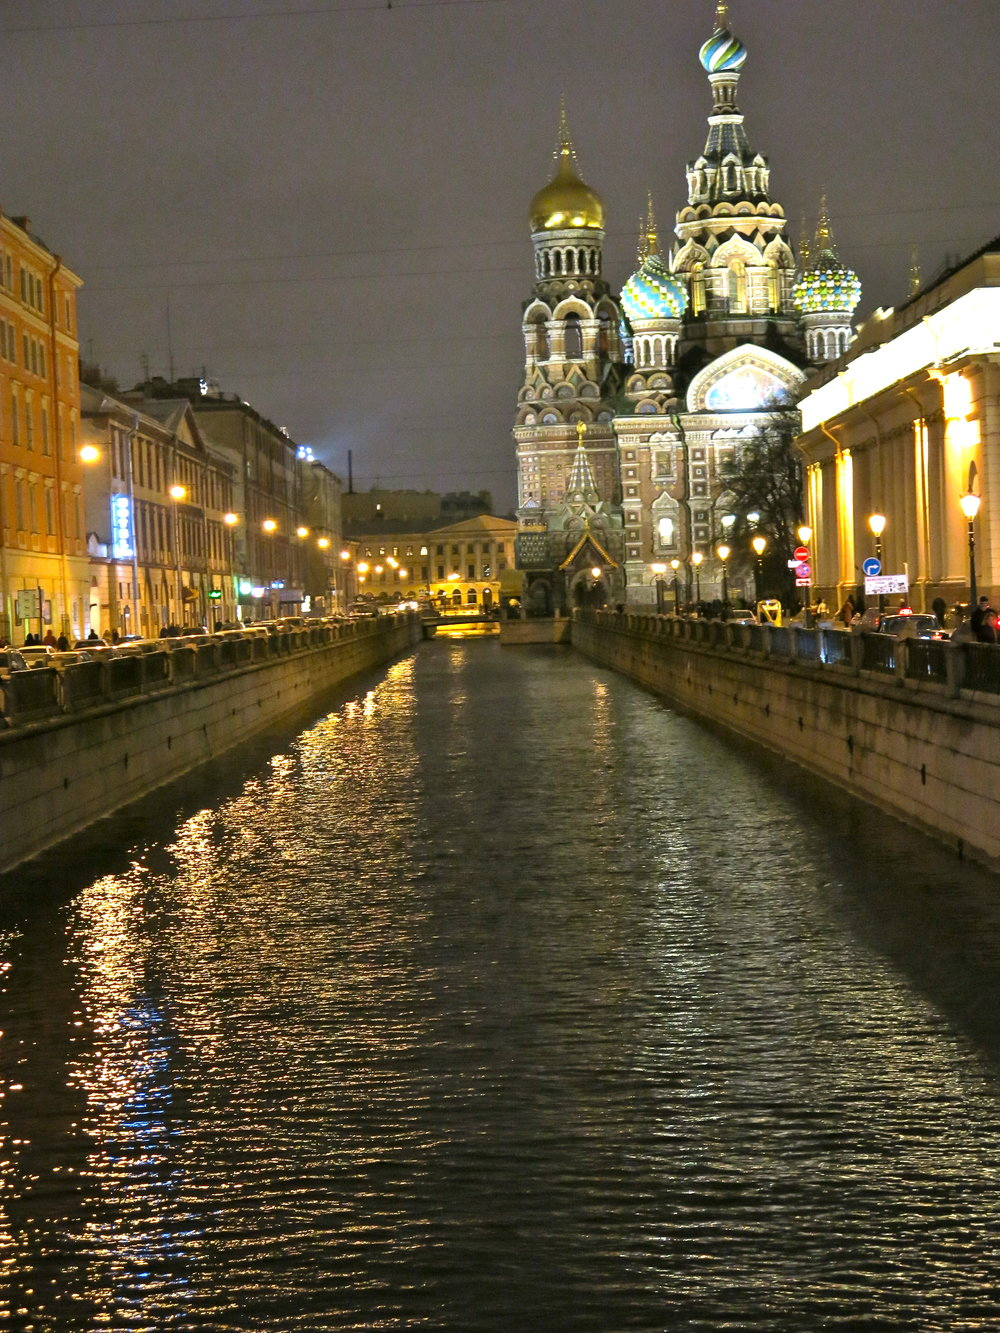 Same view from the Griboedov canal at night